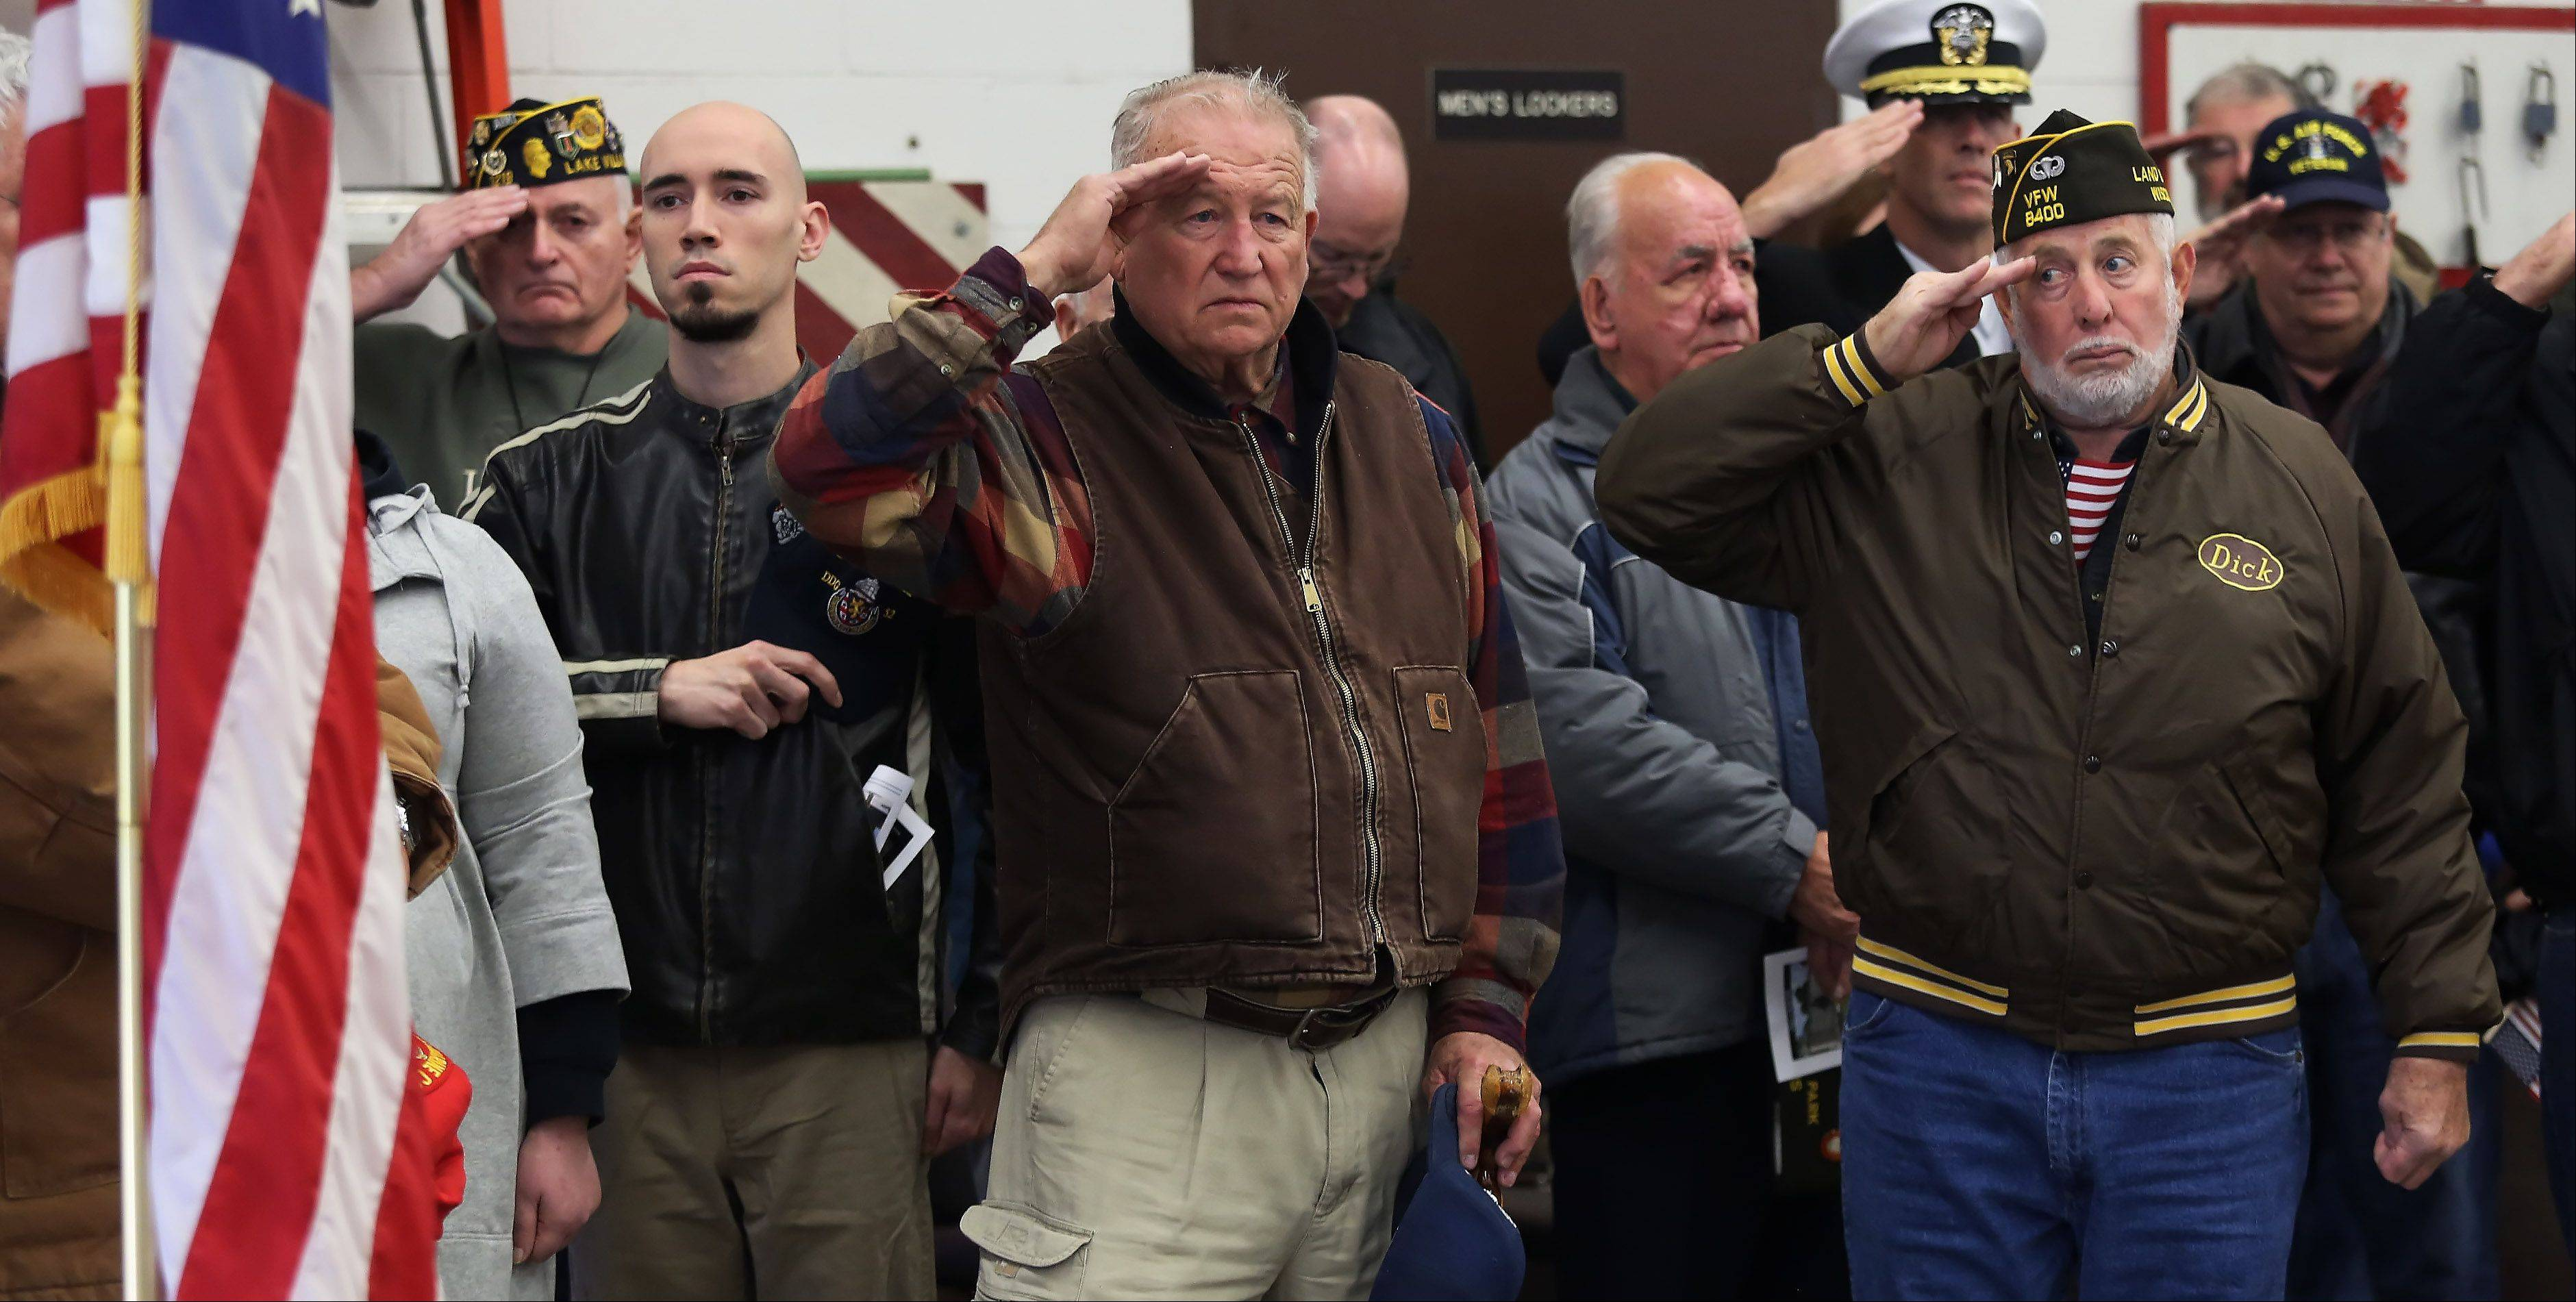 Veterans stand at attention during the playing of Taps at Monday� Veterans Day ceremony at the Lindenhurst Municipal Center and Veterans Memorial. The ceremony honored veterans and their families and featured several speakers, including Capt. R. Scott Laedlein, commanding officer of Navy Operational Support Command for Chicago.